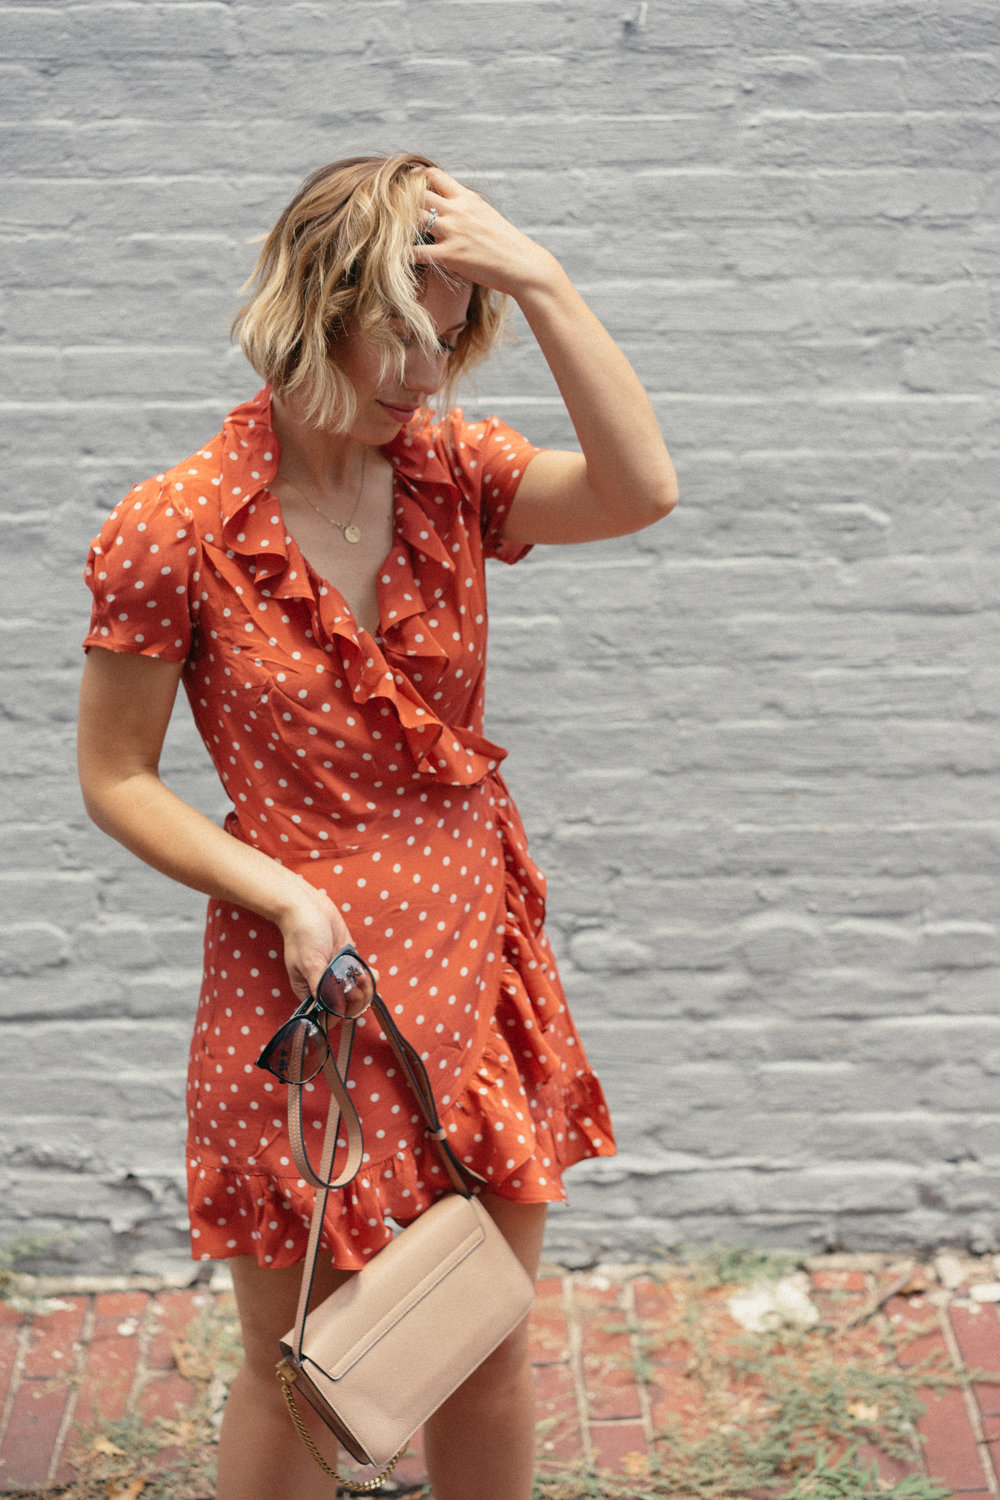 realisation par orange dress